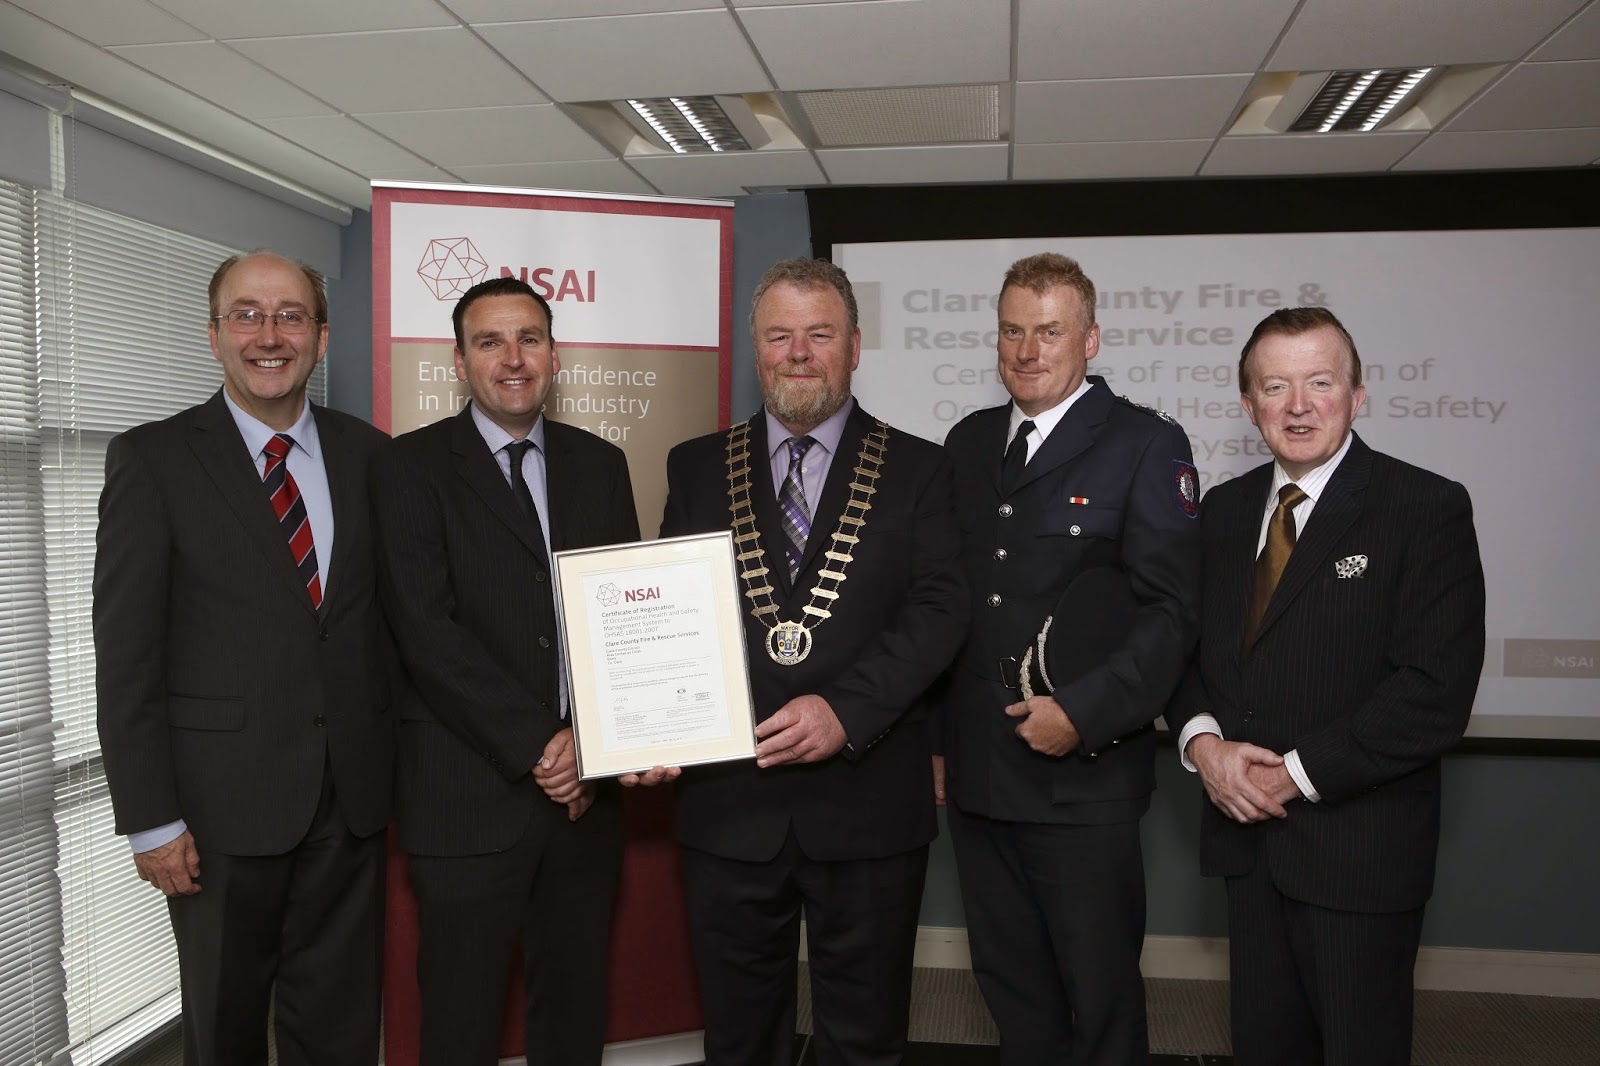 NSAI safety award for Clare County Fire and Rescue Service